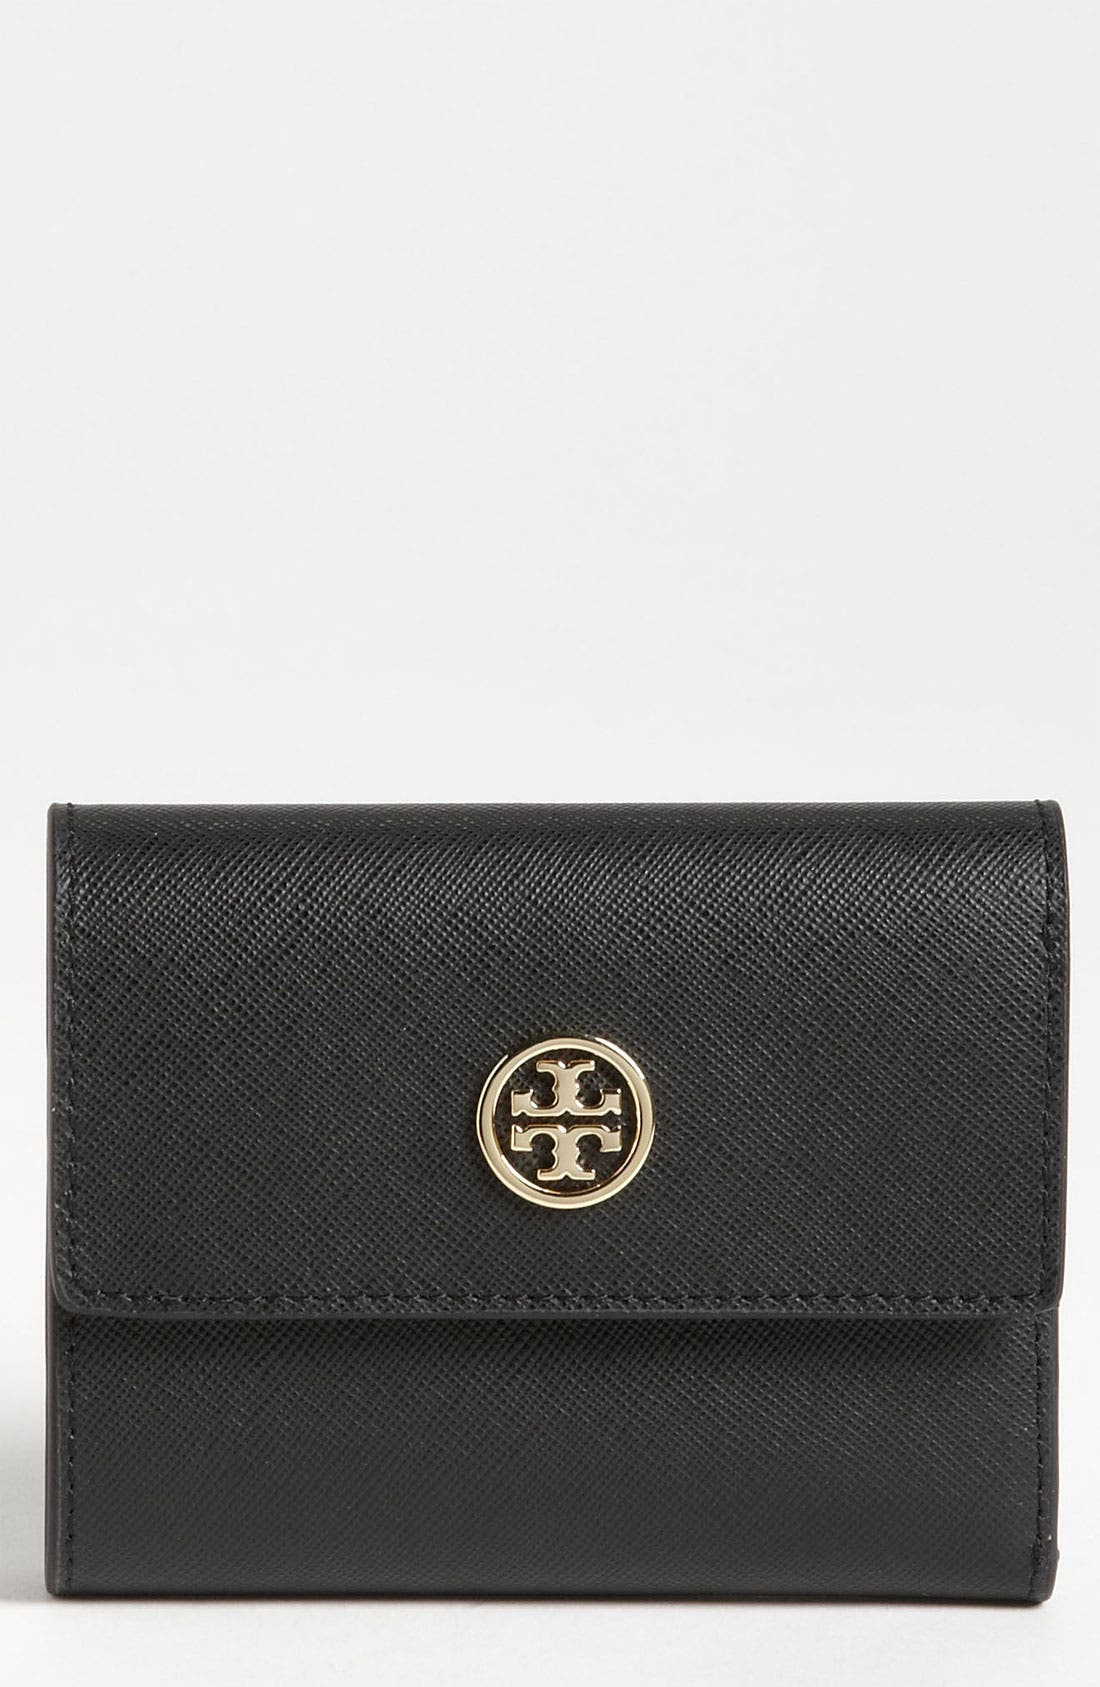 Alternate Image 1 Selected - Tory Burch 'Robinson' Saffiano Leather French Wallet